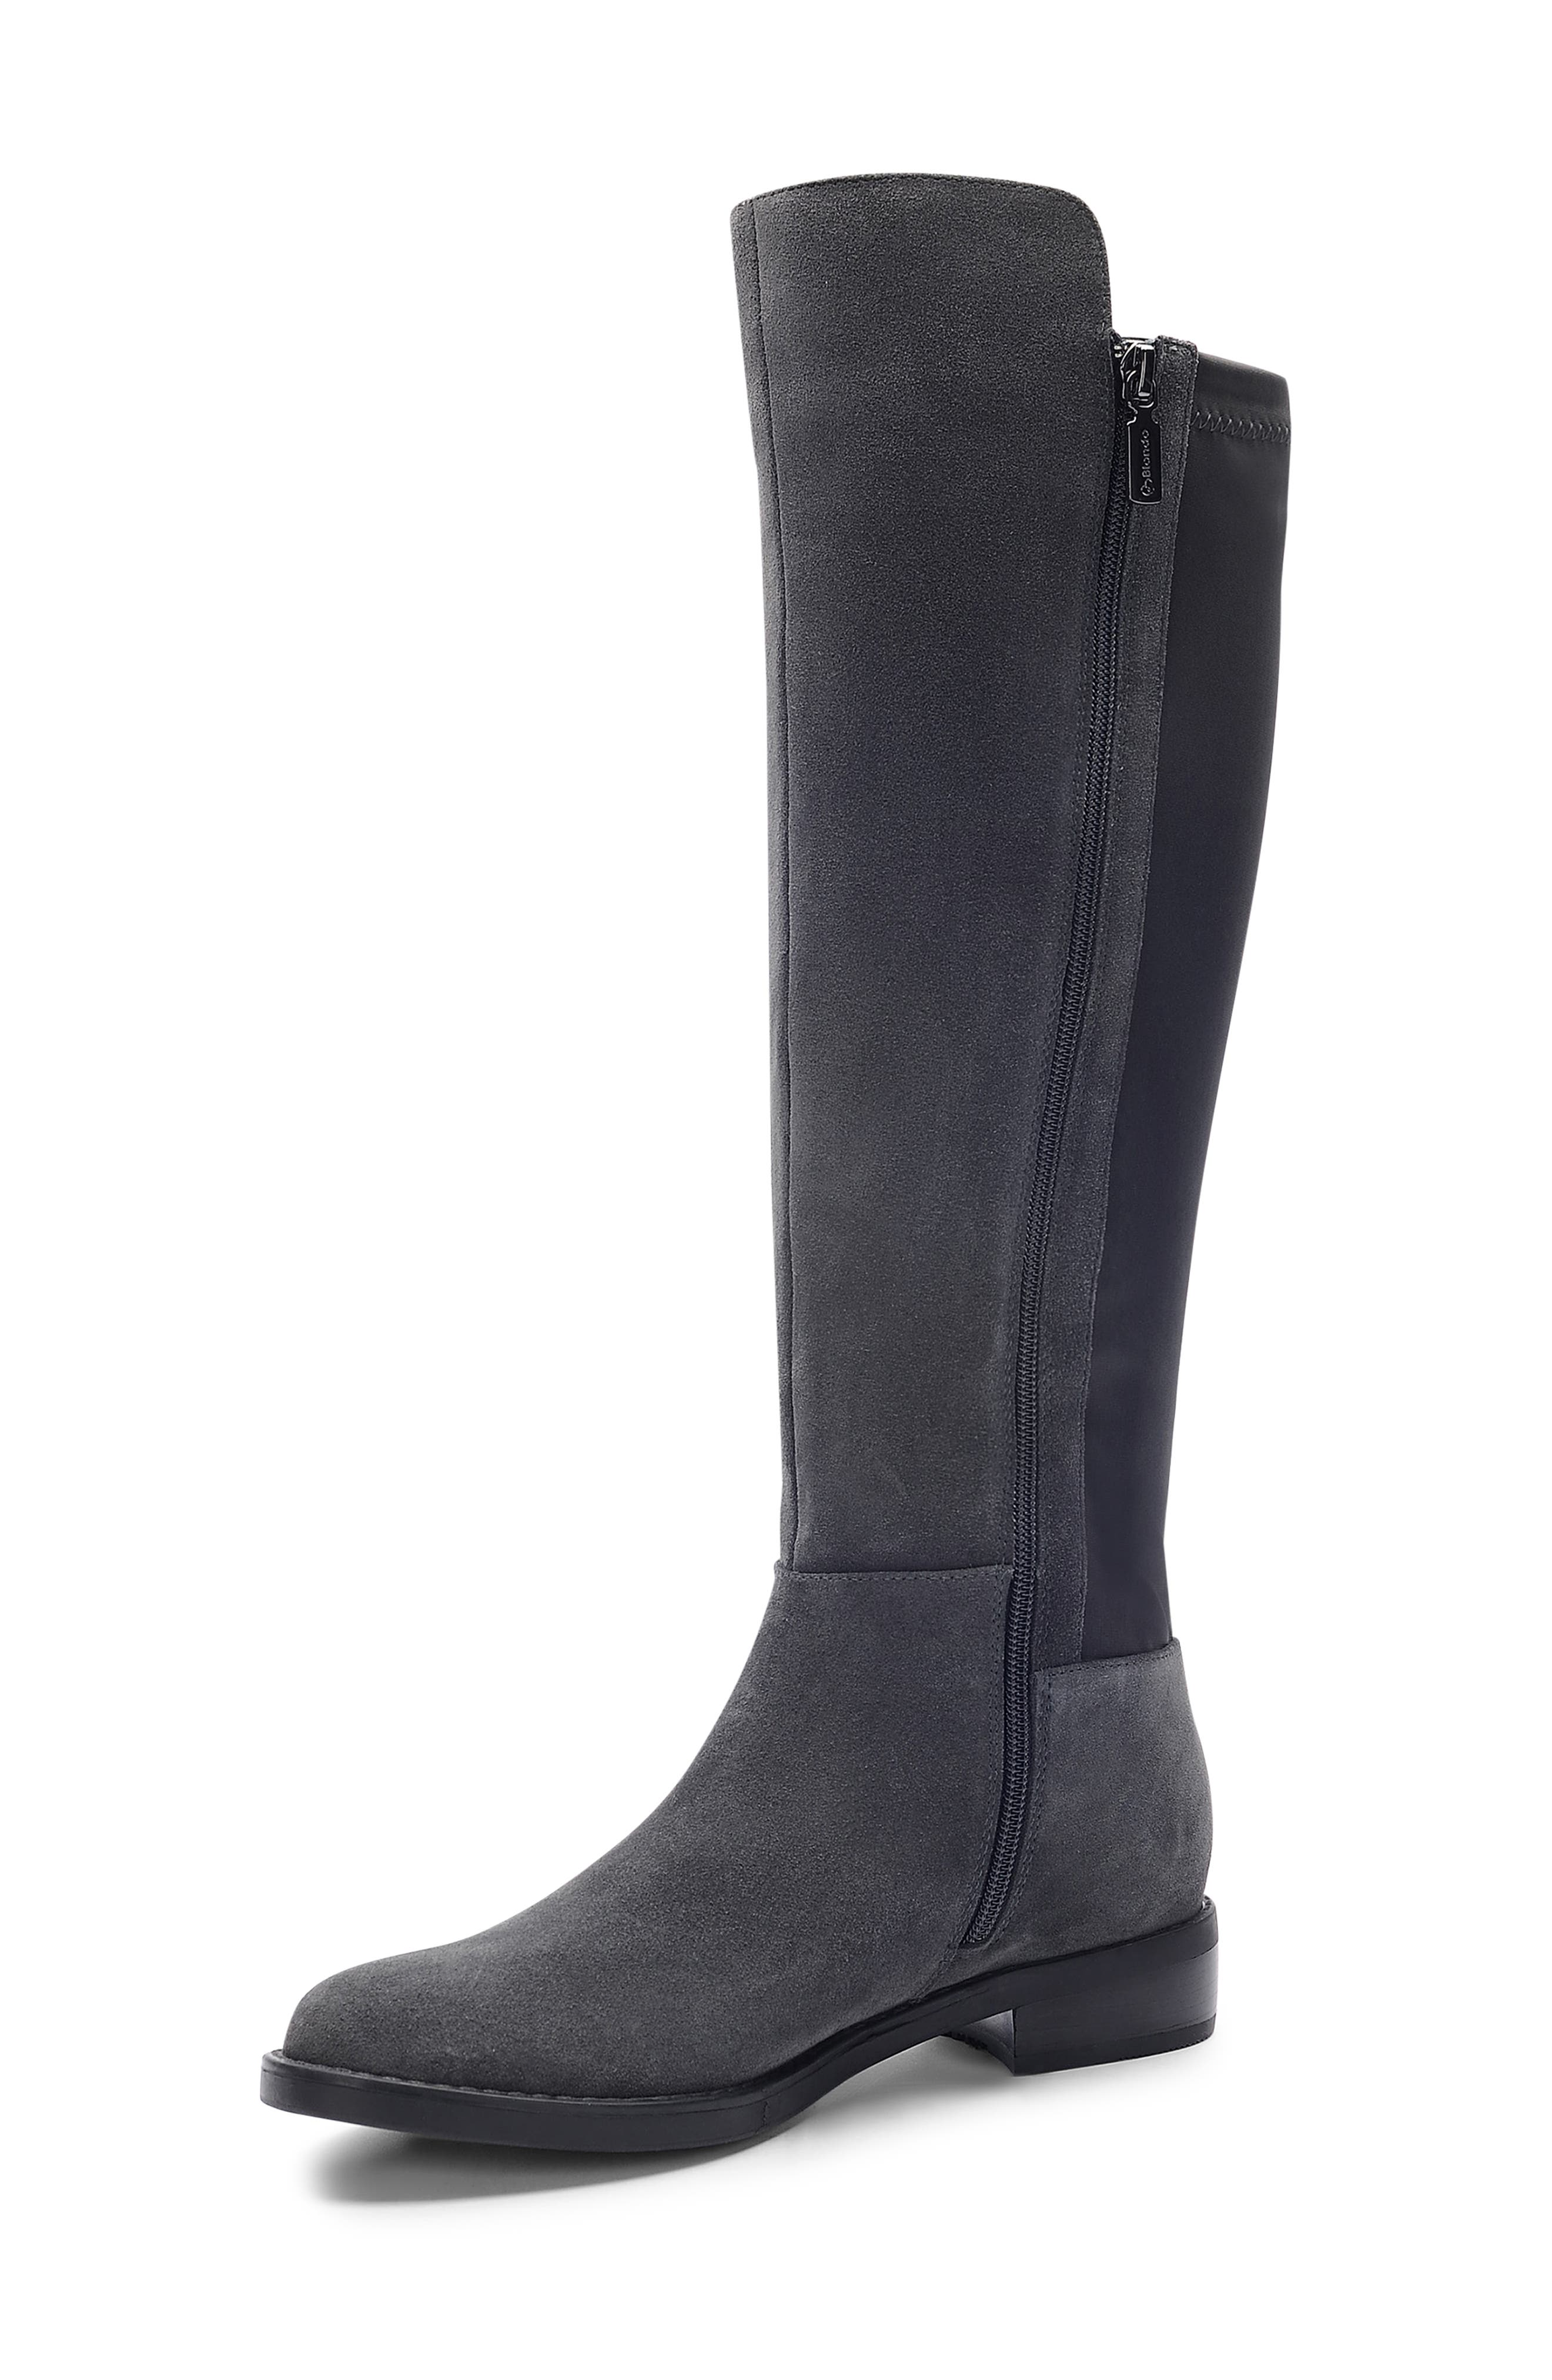 Ellie Waterproof Knee High Riding Boot,                             Alternate thumbnail 8, color,                             DARK GREY SUEDE